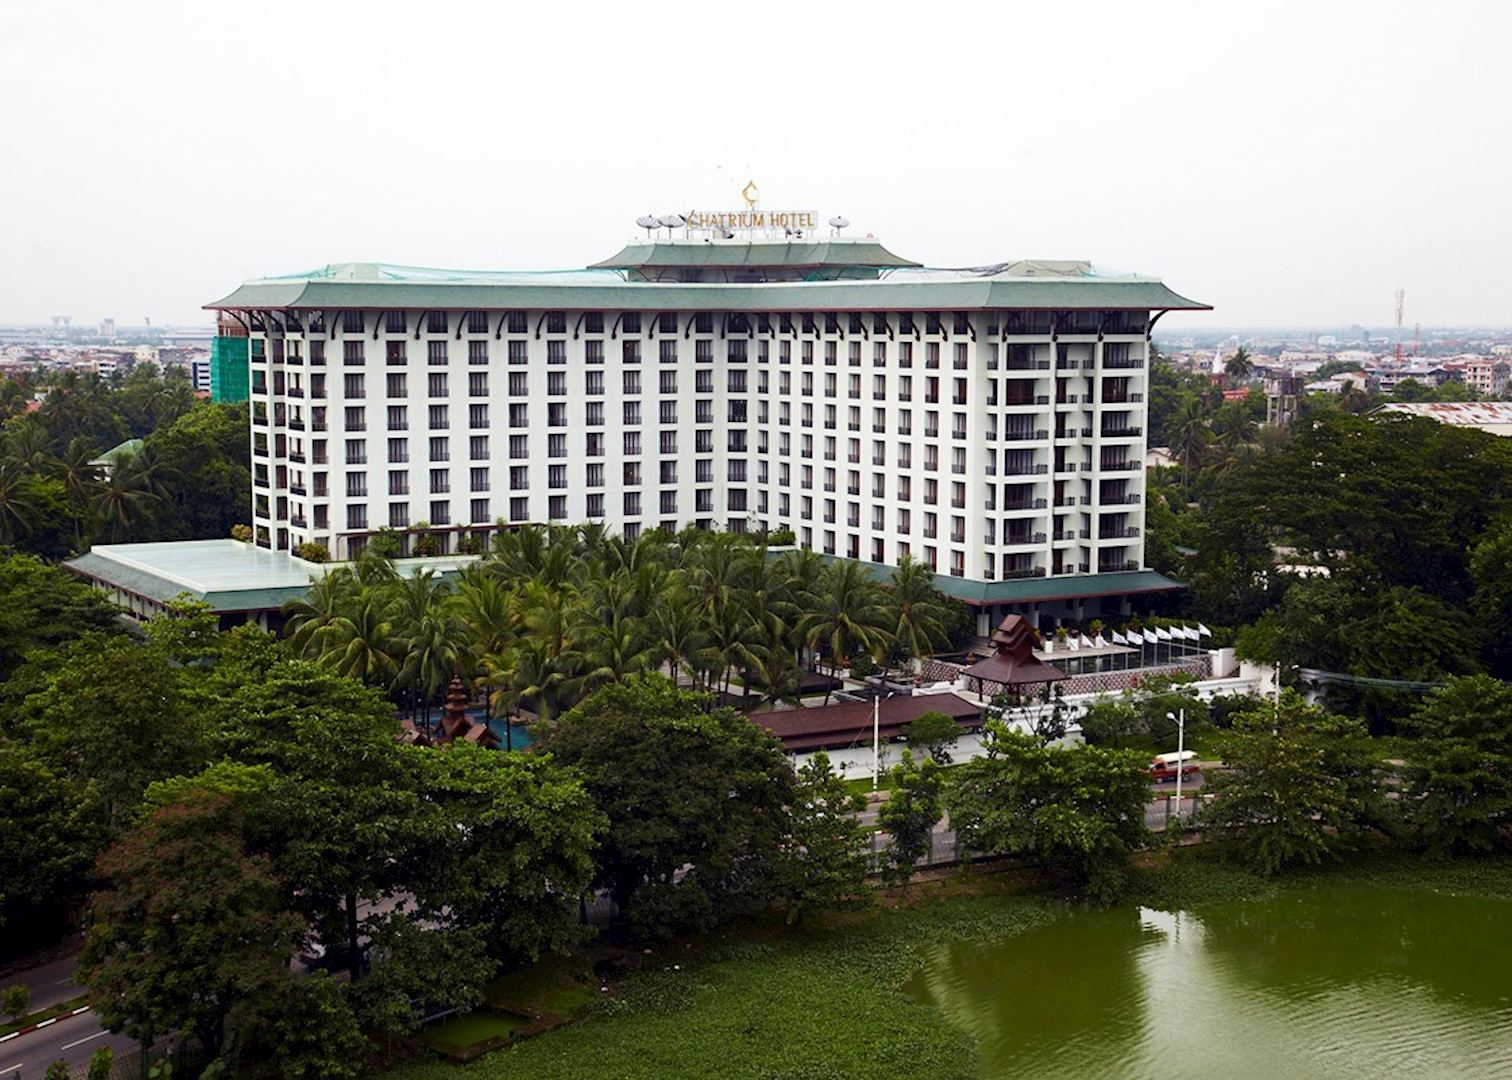 Chatrium hotel royal lake yangon hotels audley travel for Hotel royal